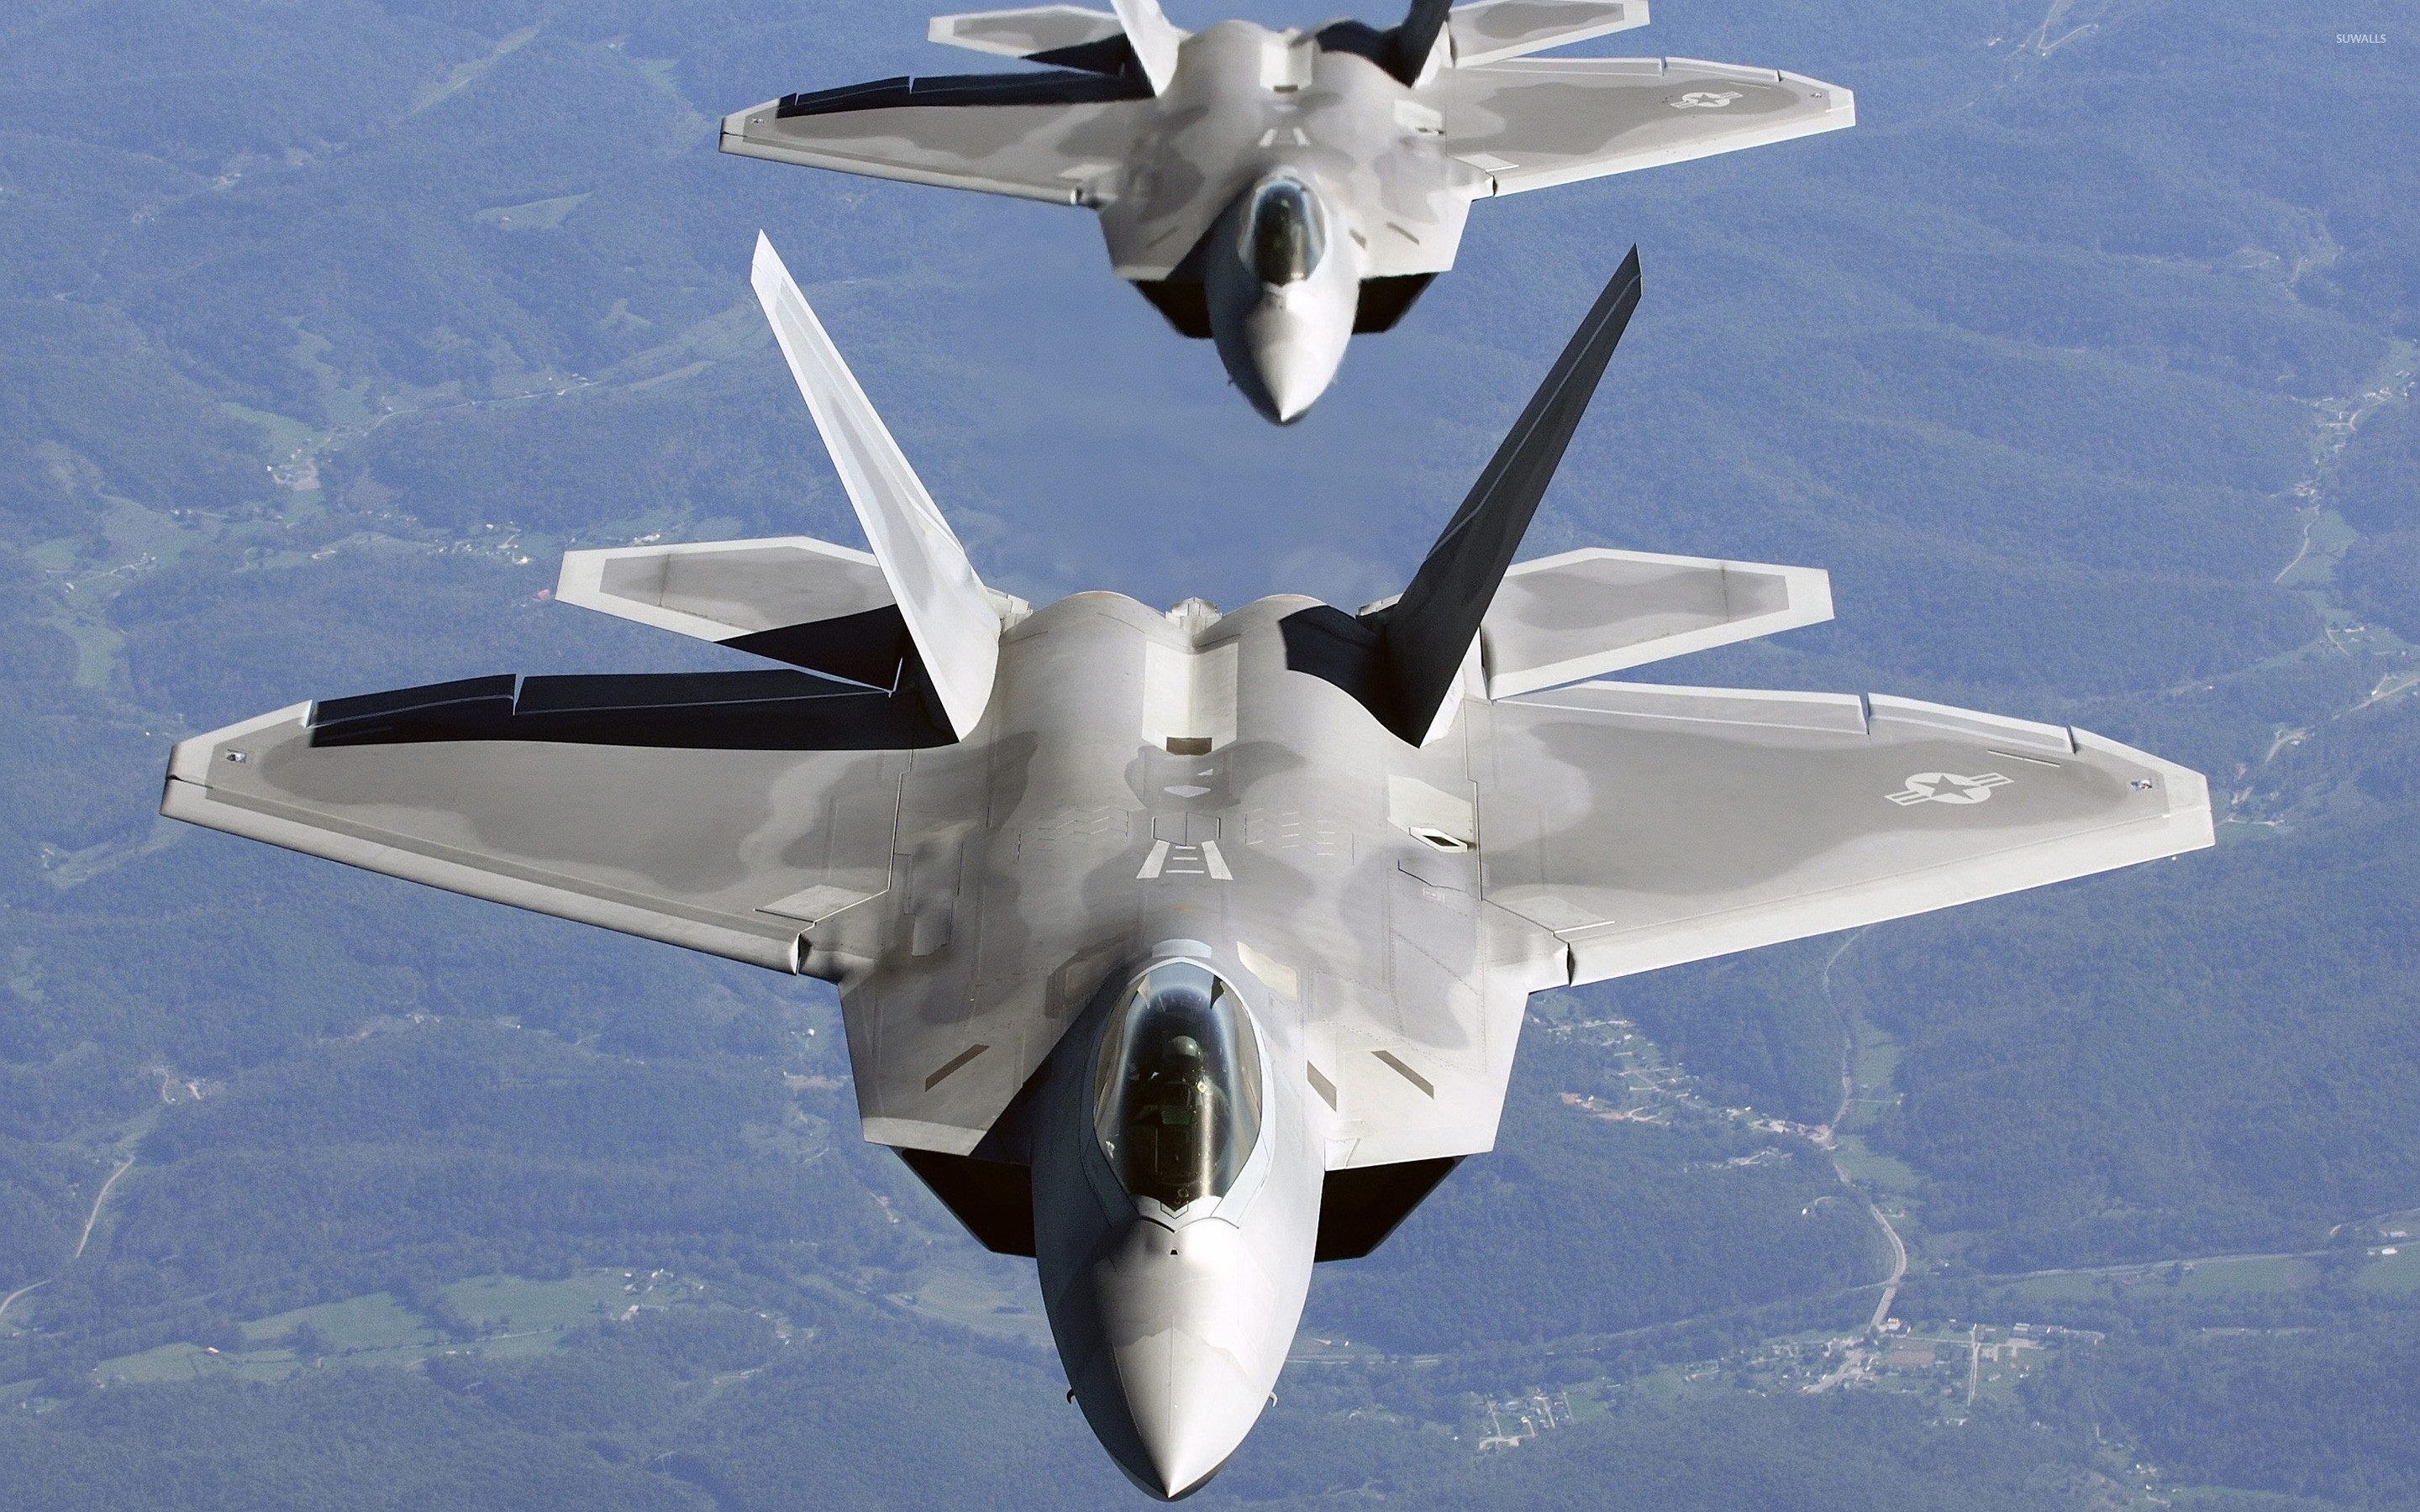 2880x1800 Lockheed Martin F-22 Raptor [9] wallpaper